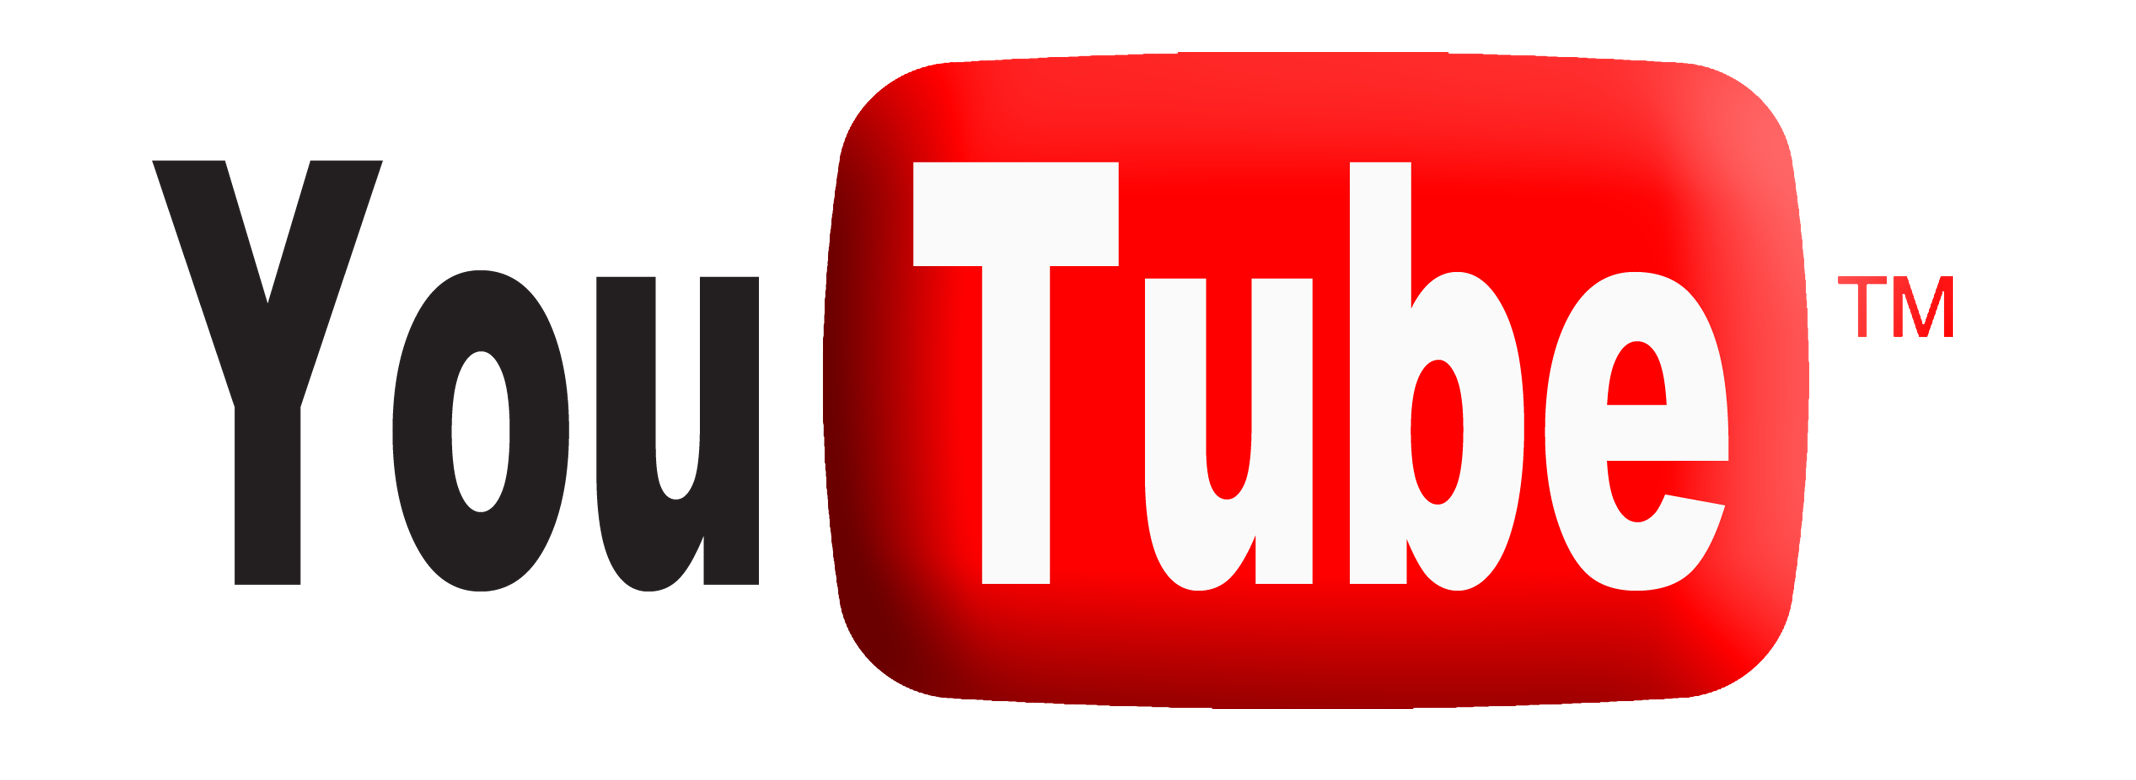 Youtube png. Logo free transparent logos